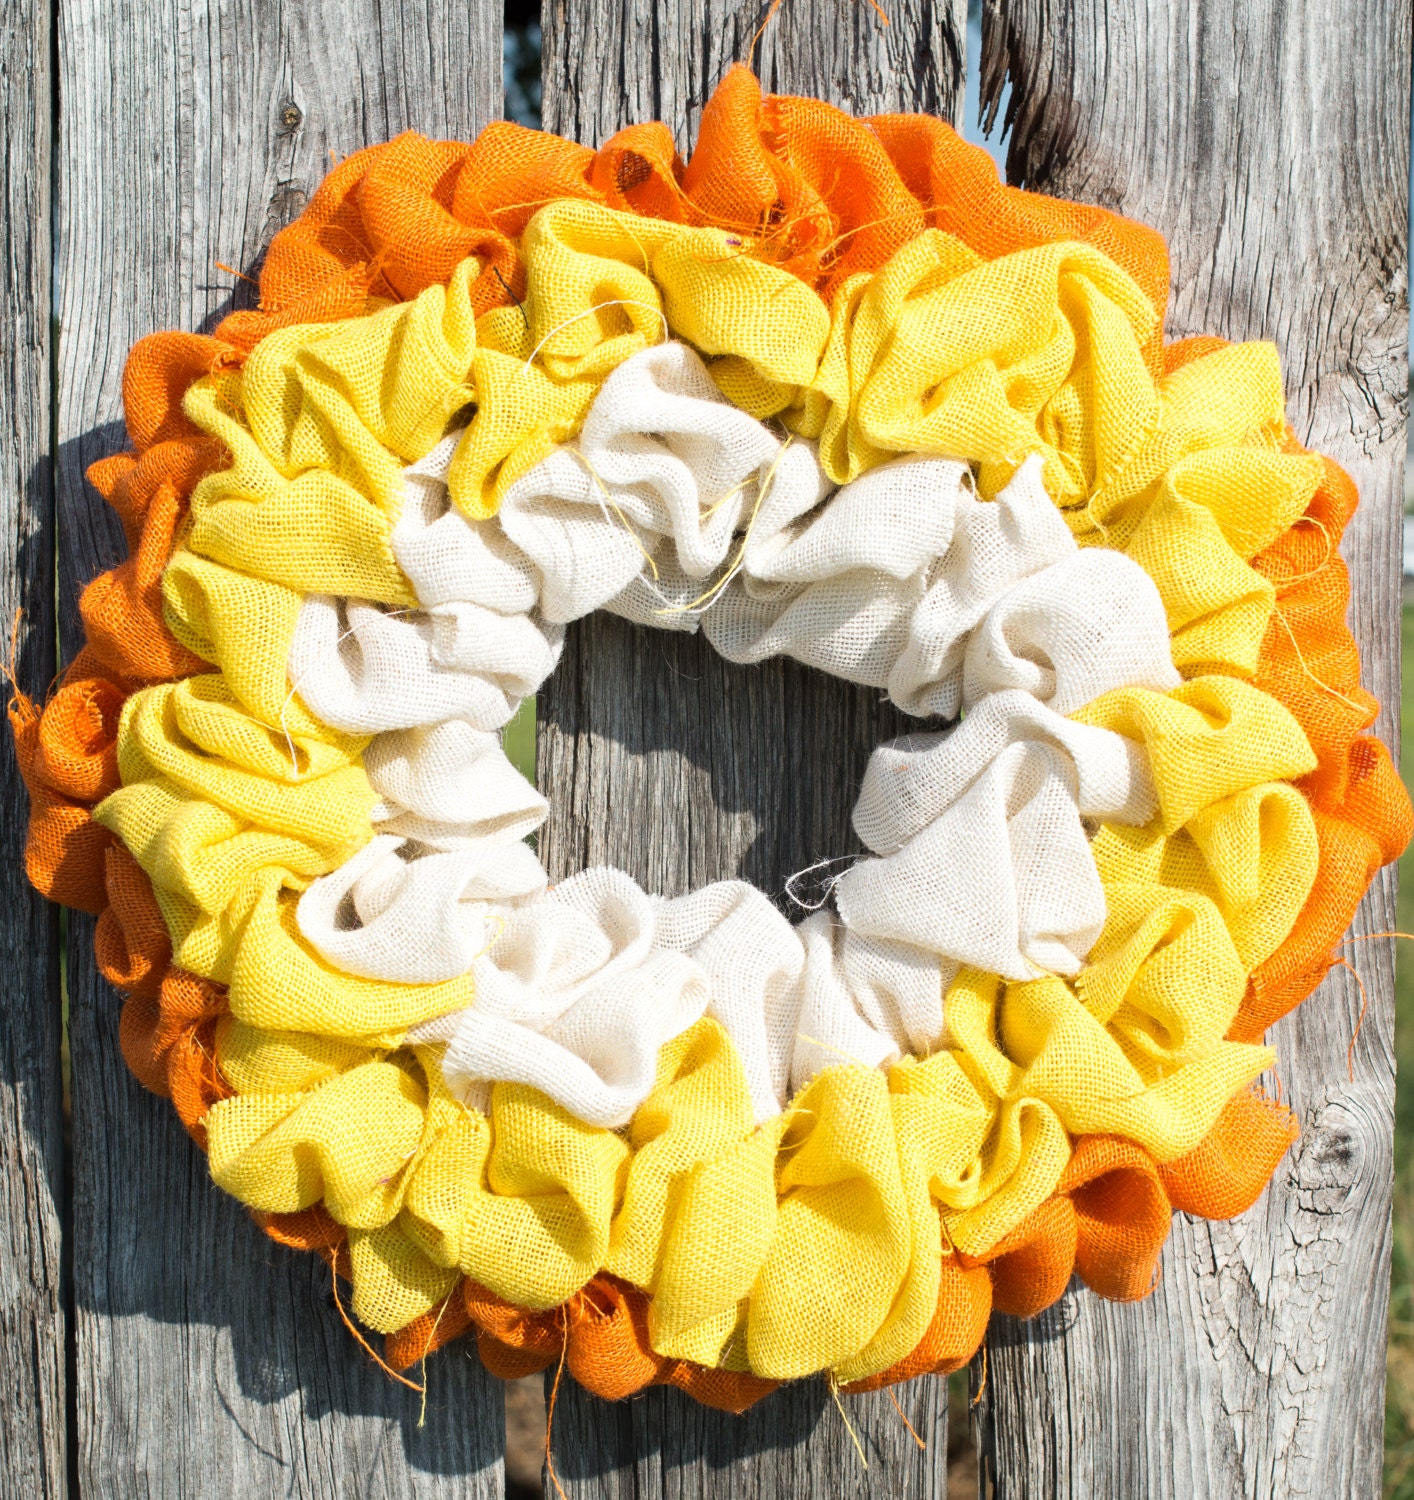 "Hinterland Trading Burlap Candy Corn Wreath 22"" Thanksgiving and Halloween"